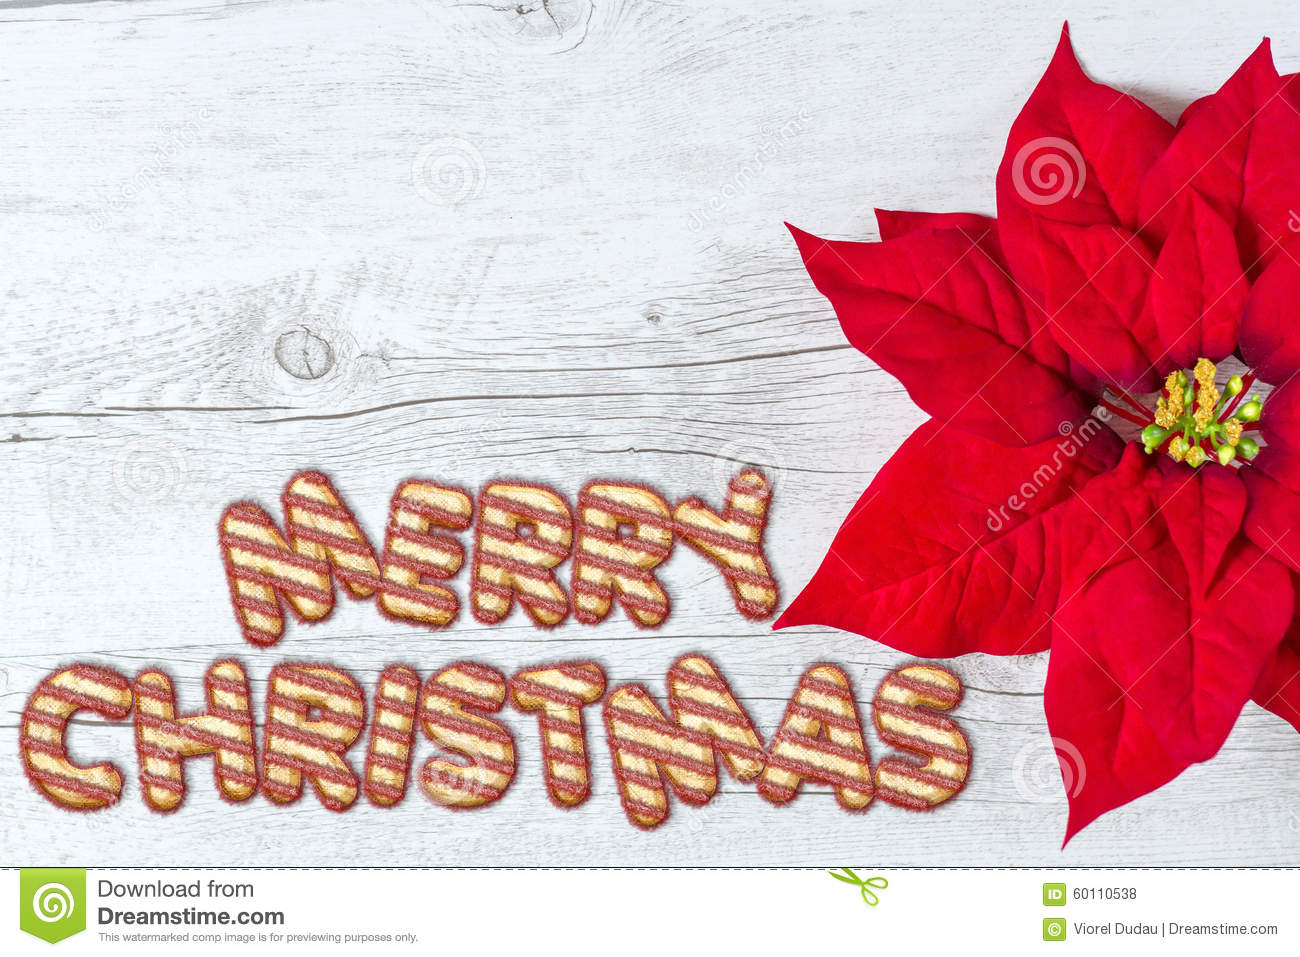 Merry christmas background stock photo image of winter 60110538 merry christmas greetings written with shiny letters on traditional white wood background and red poinsettia flower m4hsunfo